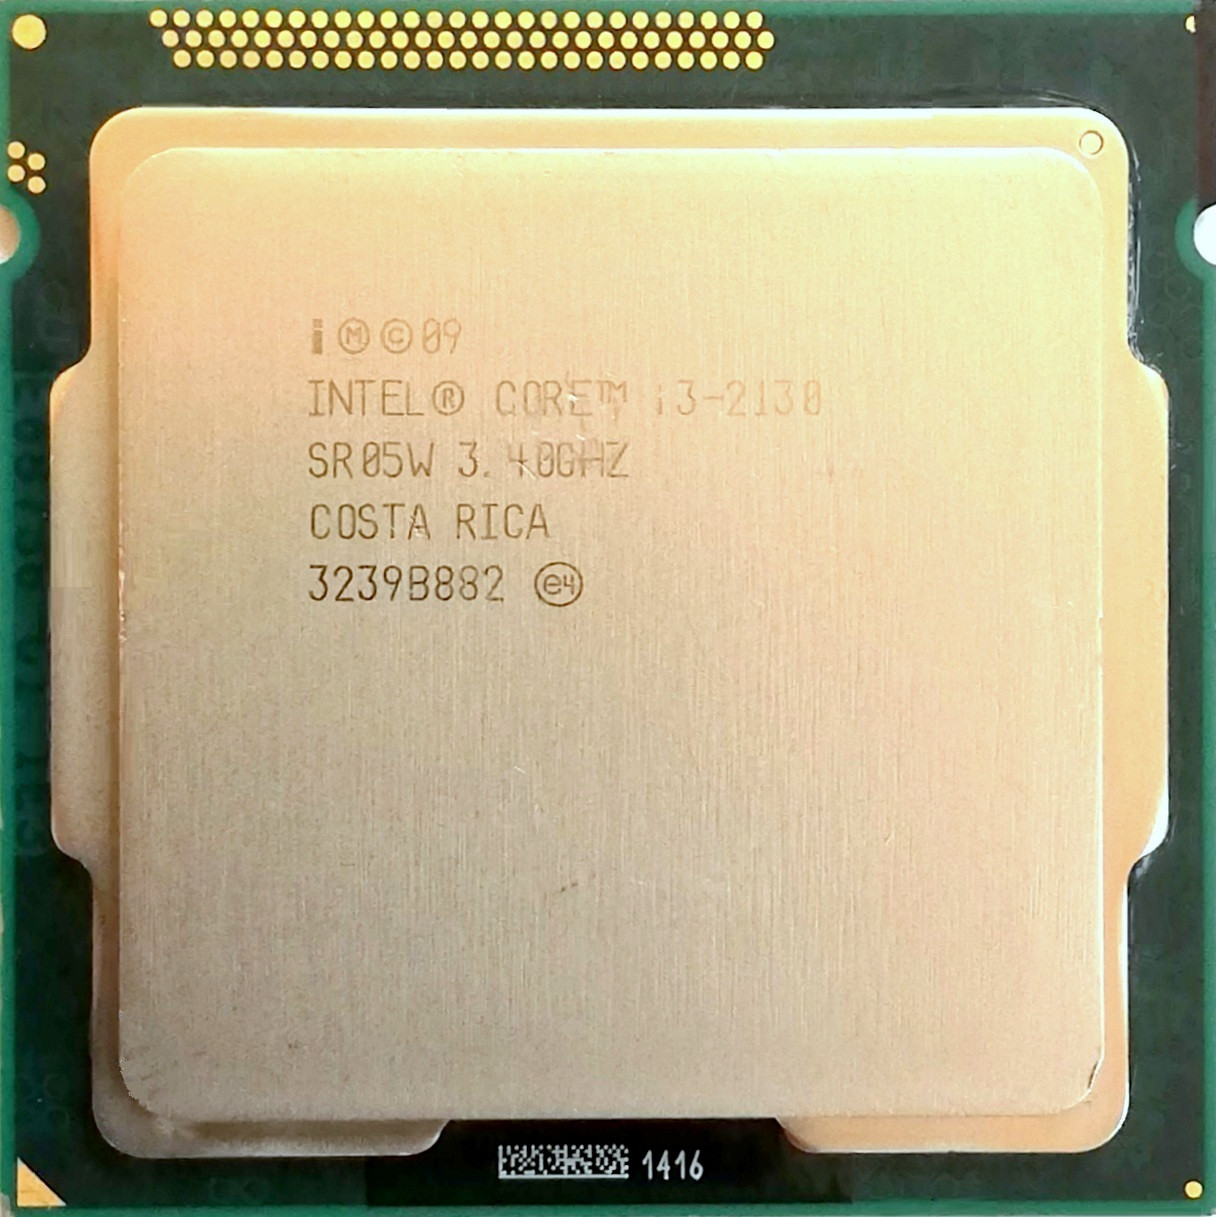 Процессор Intel Core i3-2130 Q0 SR05W 3.4GHz 3M Cache Socket 1155 Б/У